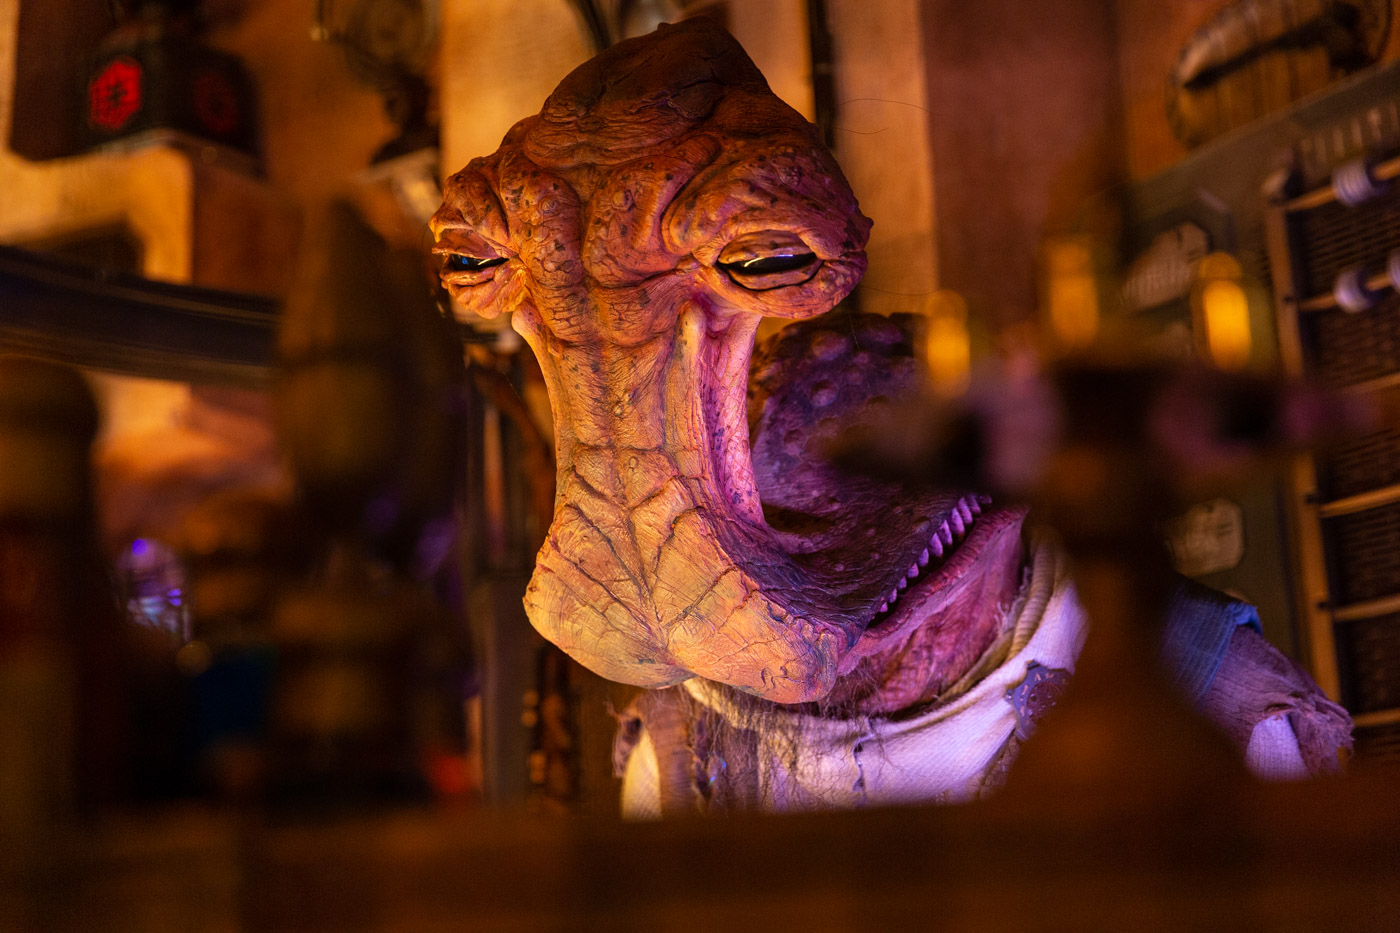 The Den of Antiquities at Galaxy's Edge in Disneyland